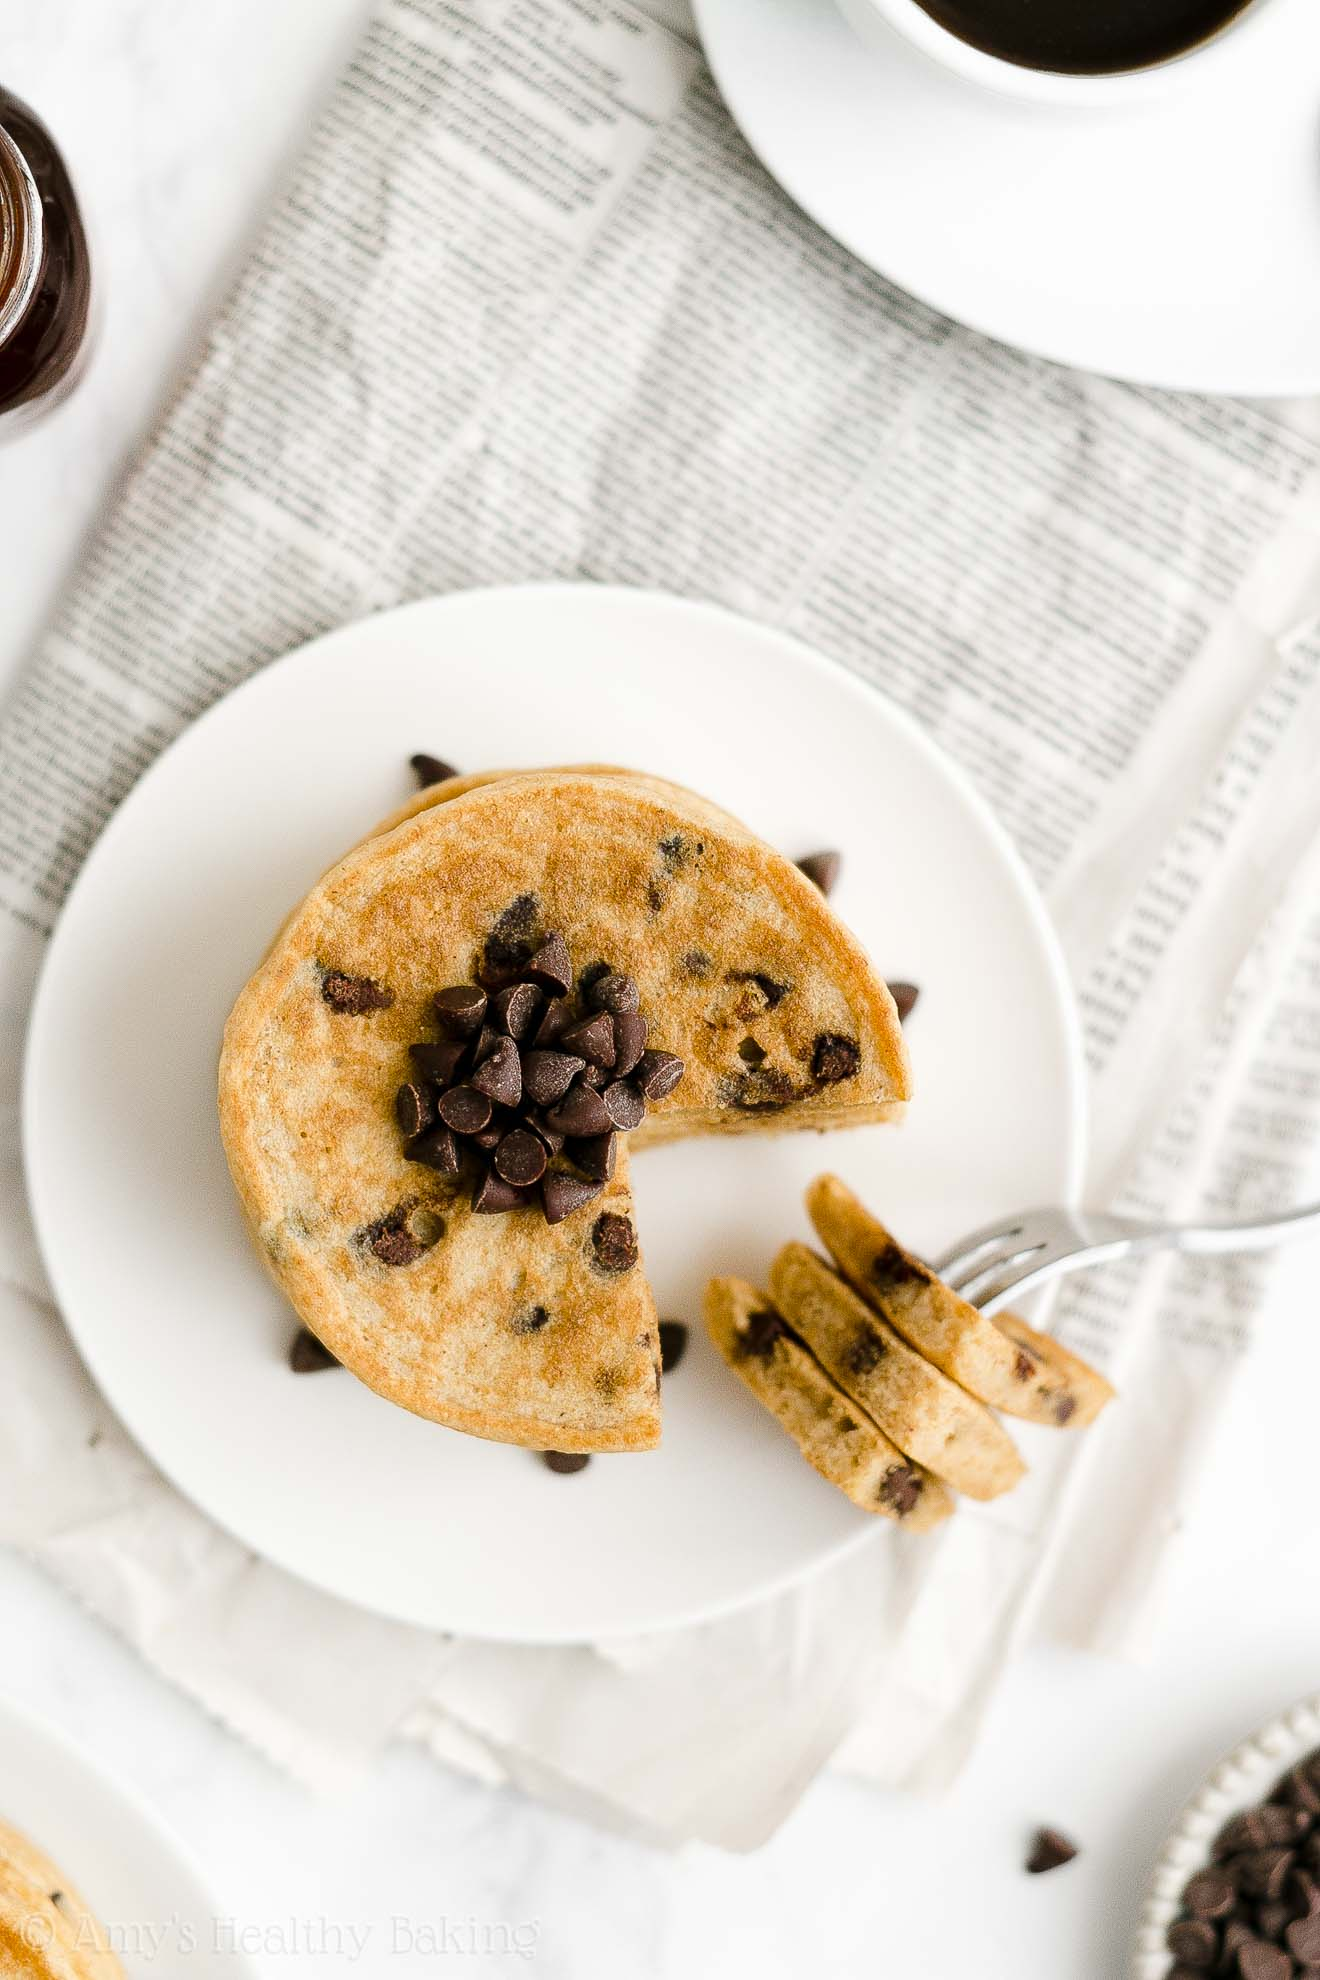 ULTIMATE Best Easy Healthy Gluten Free Low Sugar Fluffy Chocolate Chip Pancakes